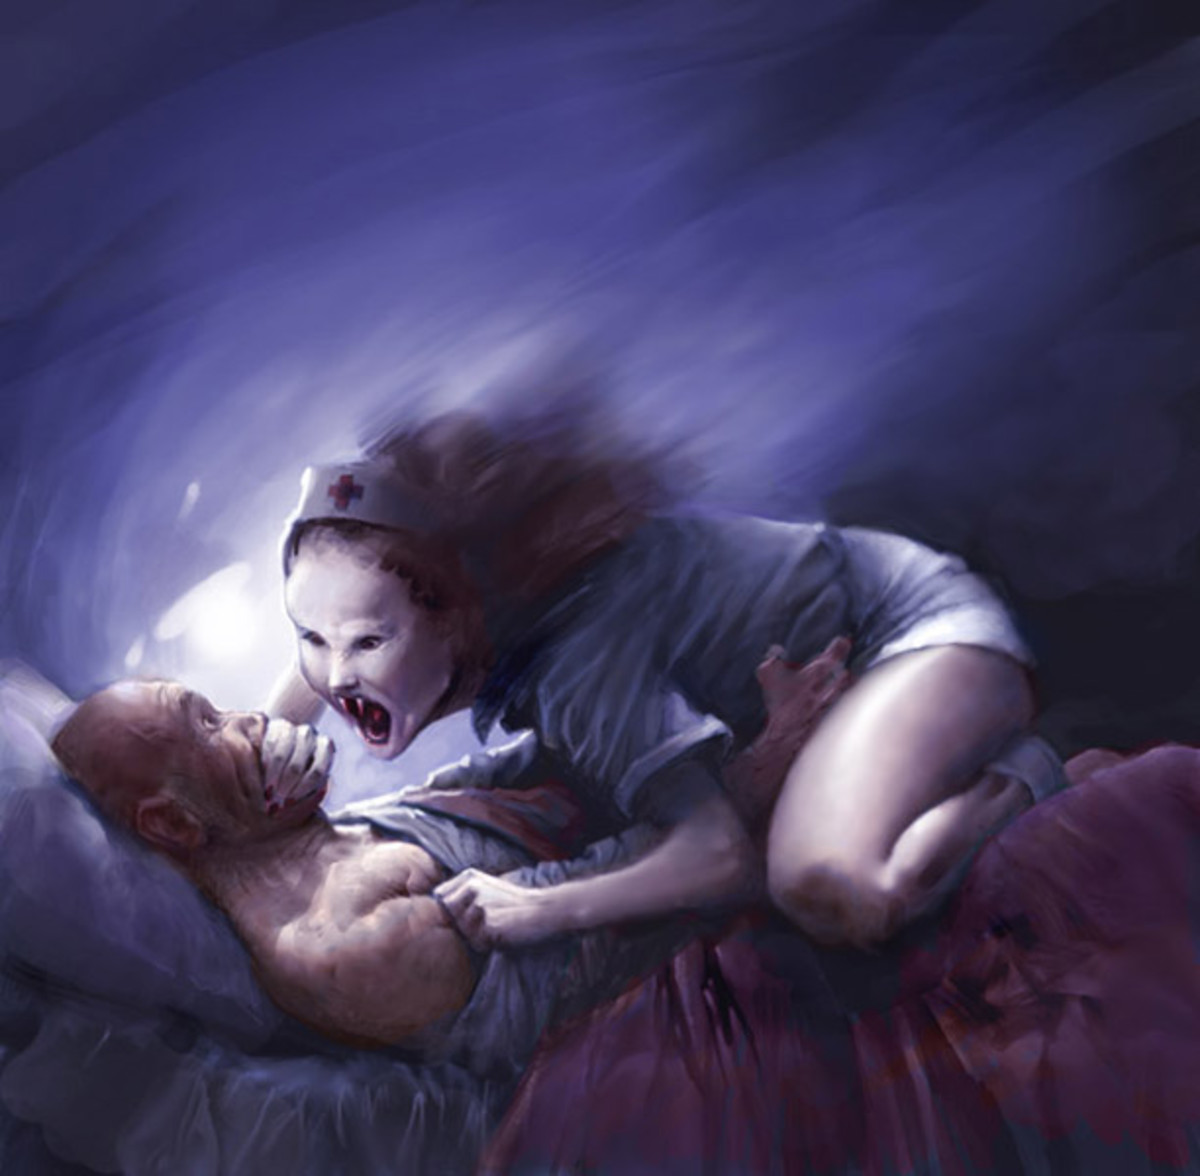 Sleep Paralysis: Symptoms, Causes and Prevention - Sleep Paralysis Stories